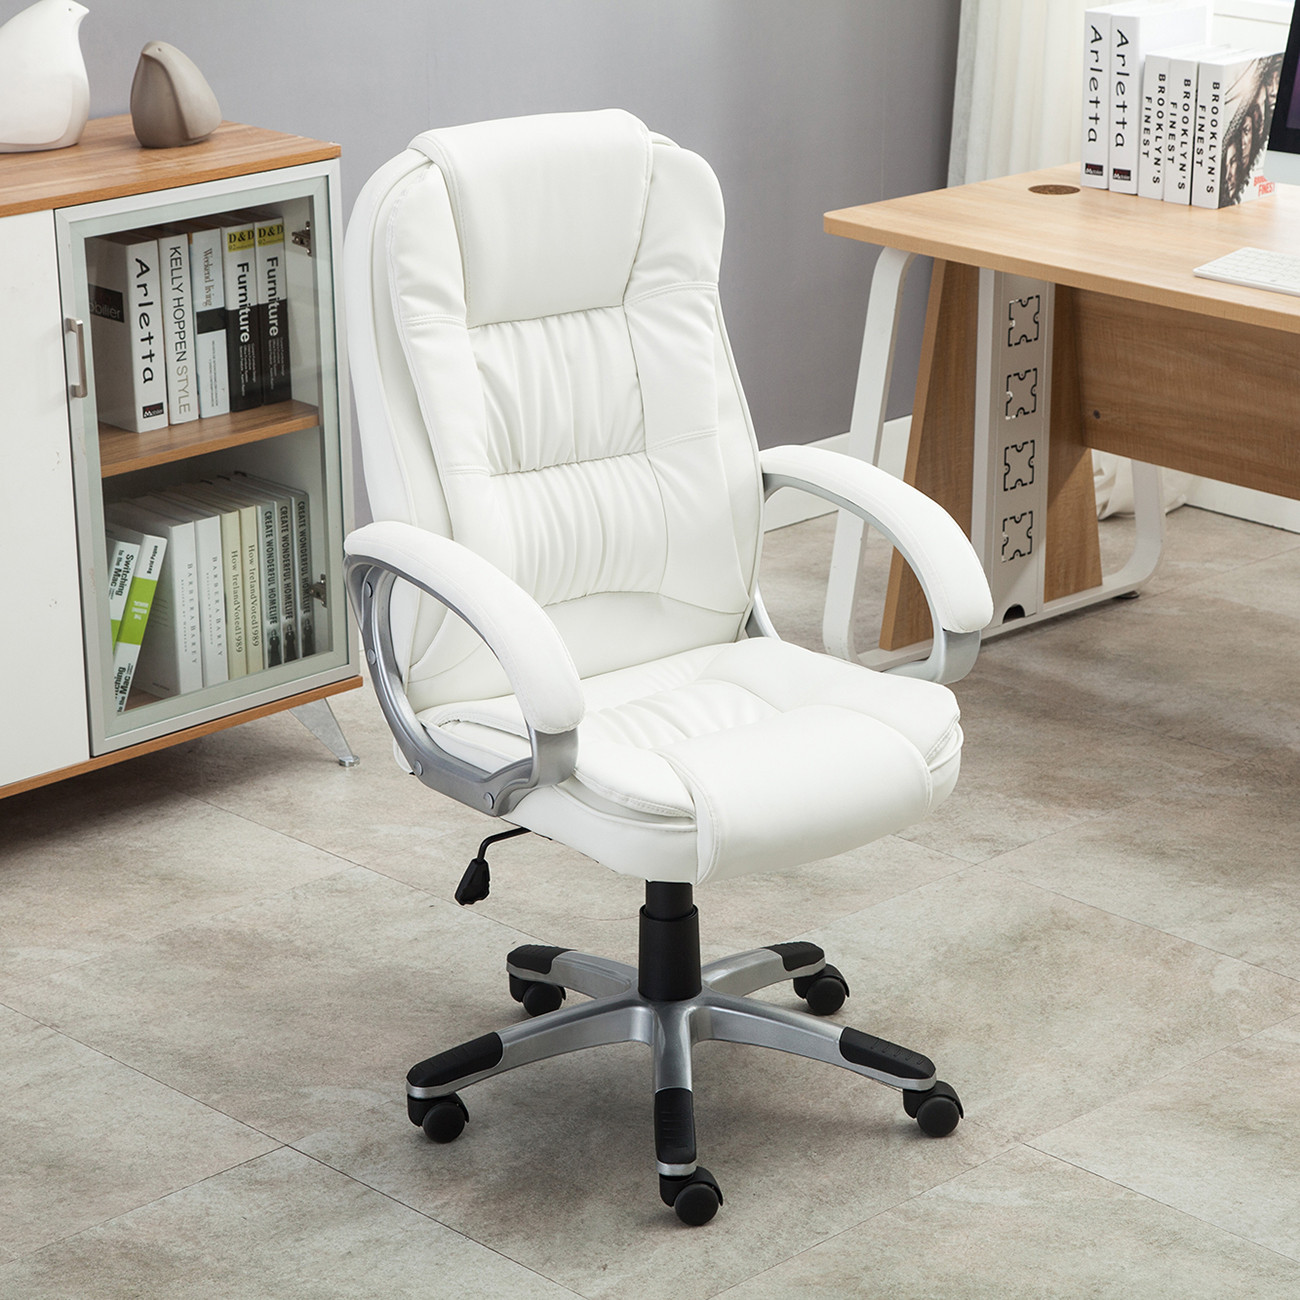 Best ideas about White Desk Chair . Save or Pin White PU Leather High Back fice Chair Executive Now.